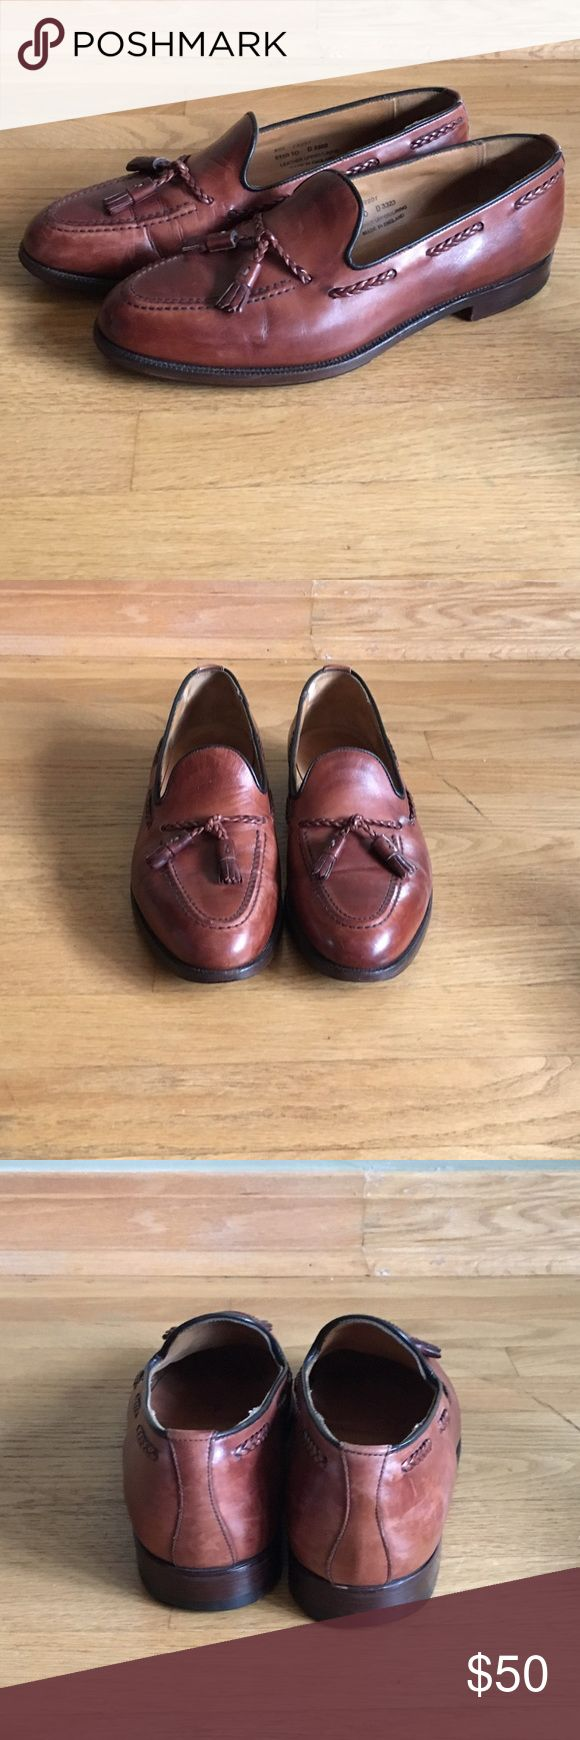 ROYAL TWEED Brown leather loafers with tassels. Gently used, benchcrafted in England, Authentic ROYAL TWEED brown loafers, Premium Grade Leather. Harry Tassel Style. Royal tweed Shoes Loafers & Slip-Ons